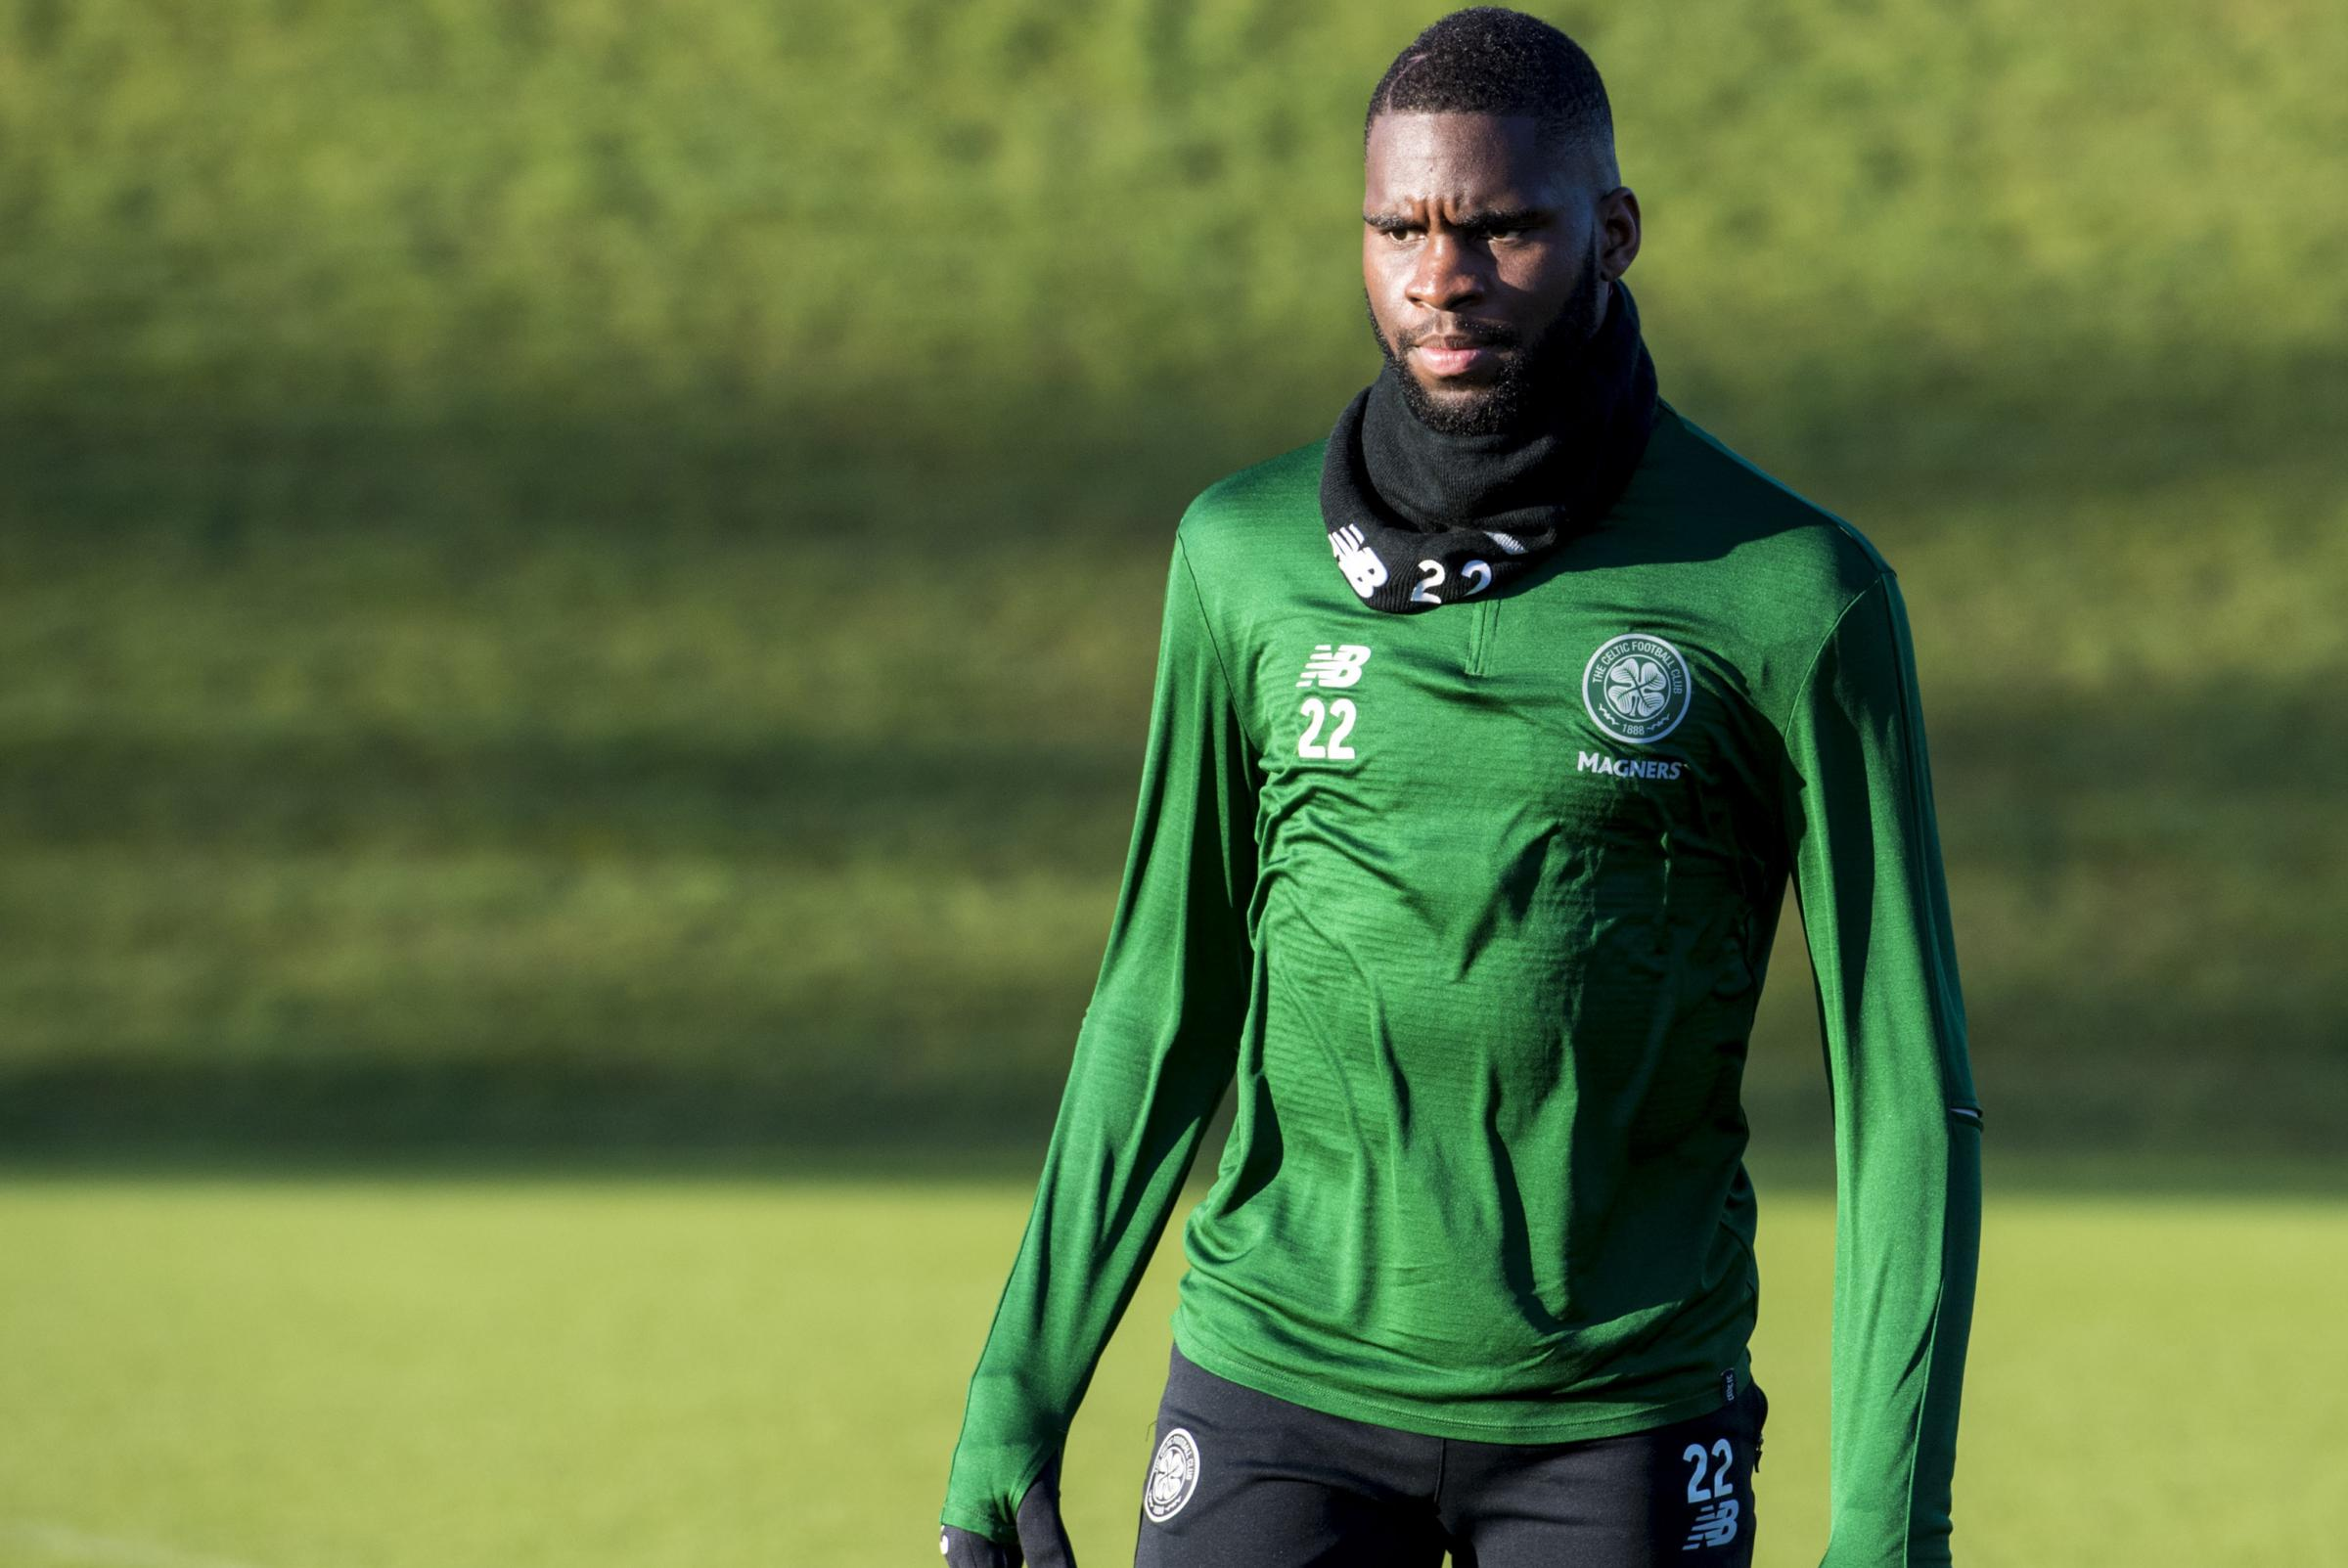 Celtic manager Brendan Rodgers expects to bring in more players but central defender looks unlikely